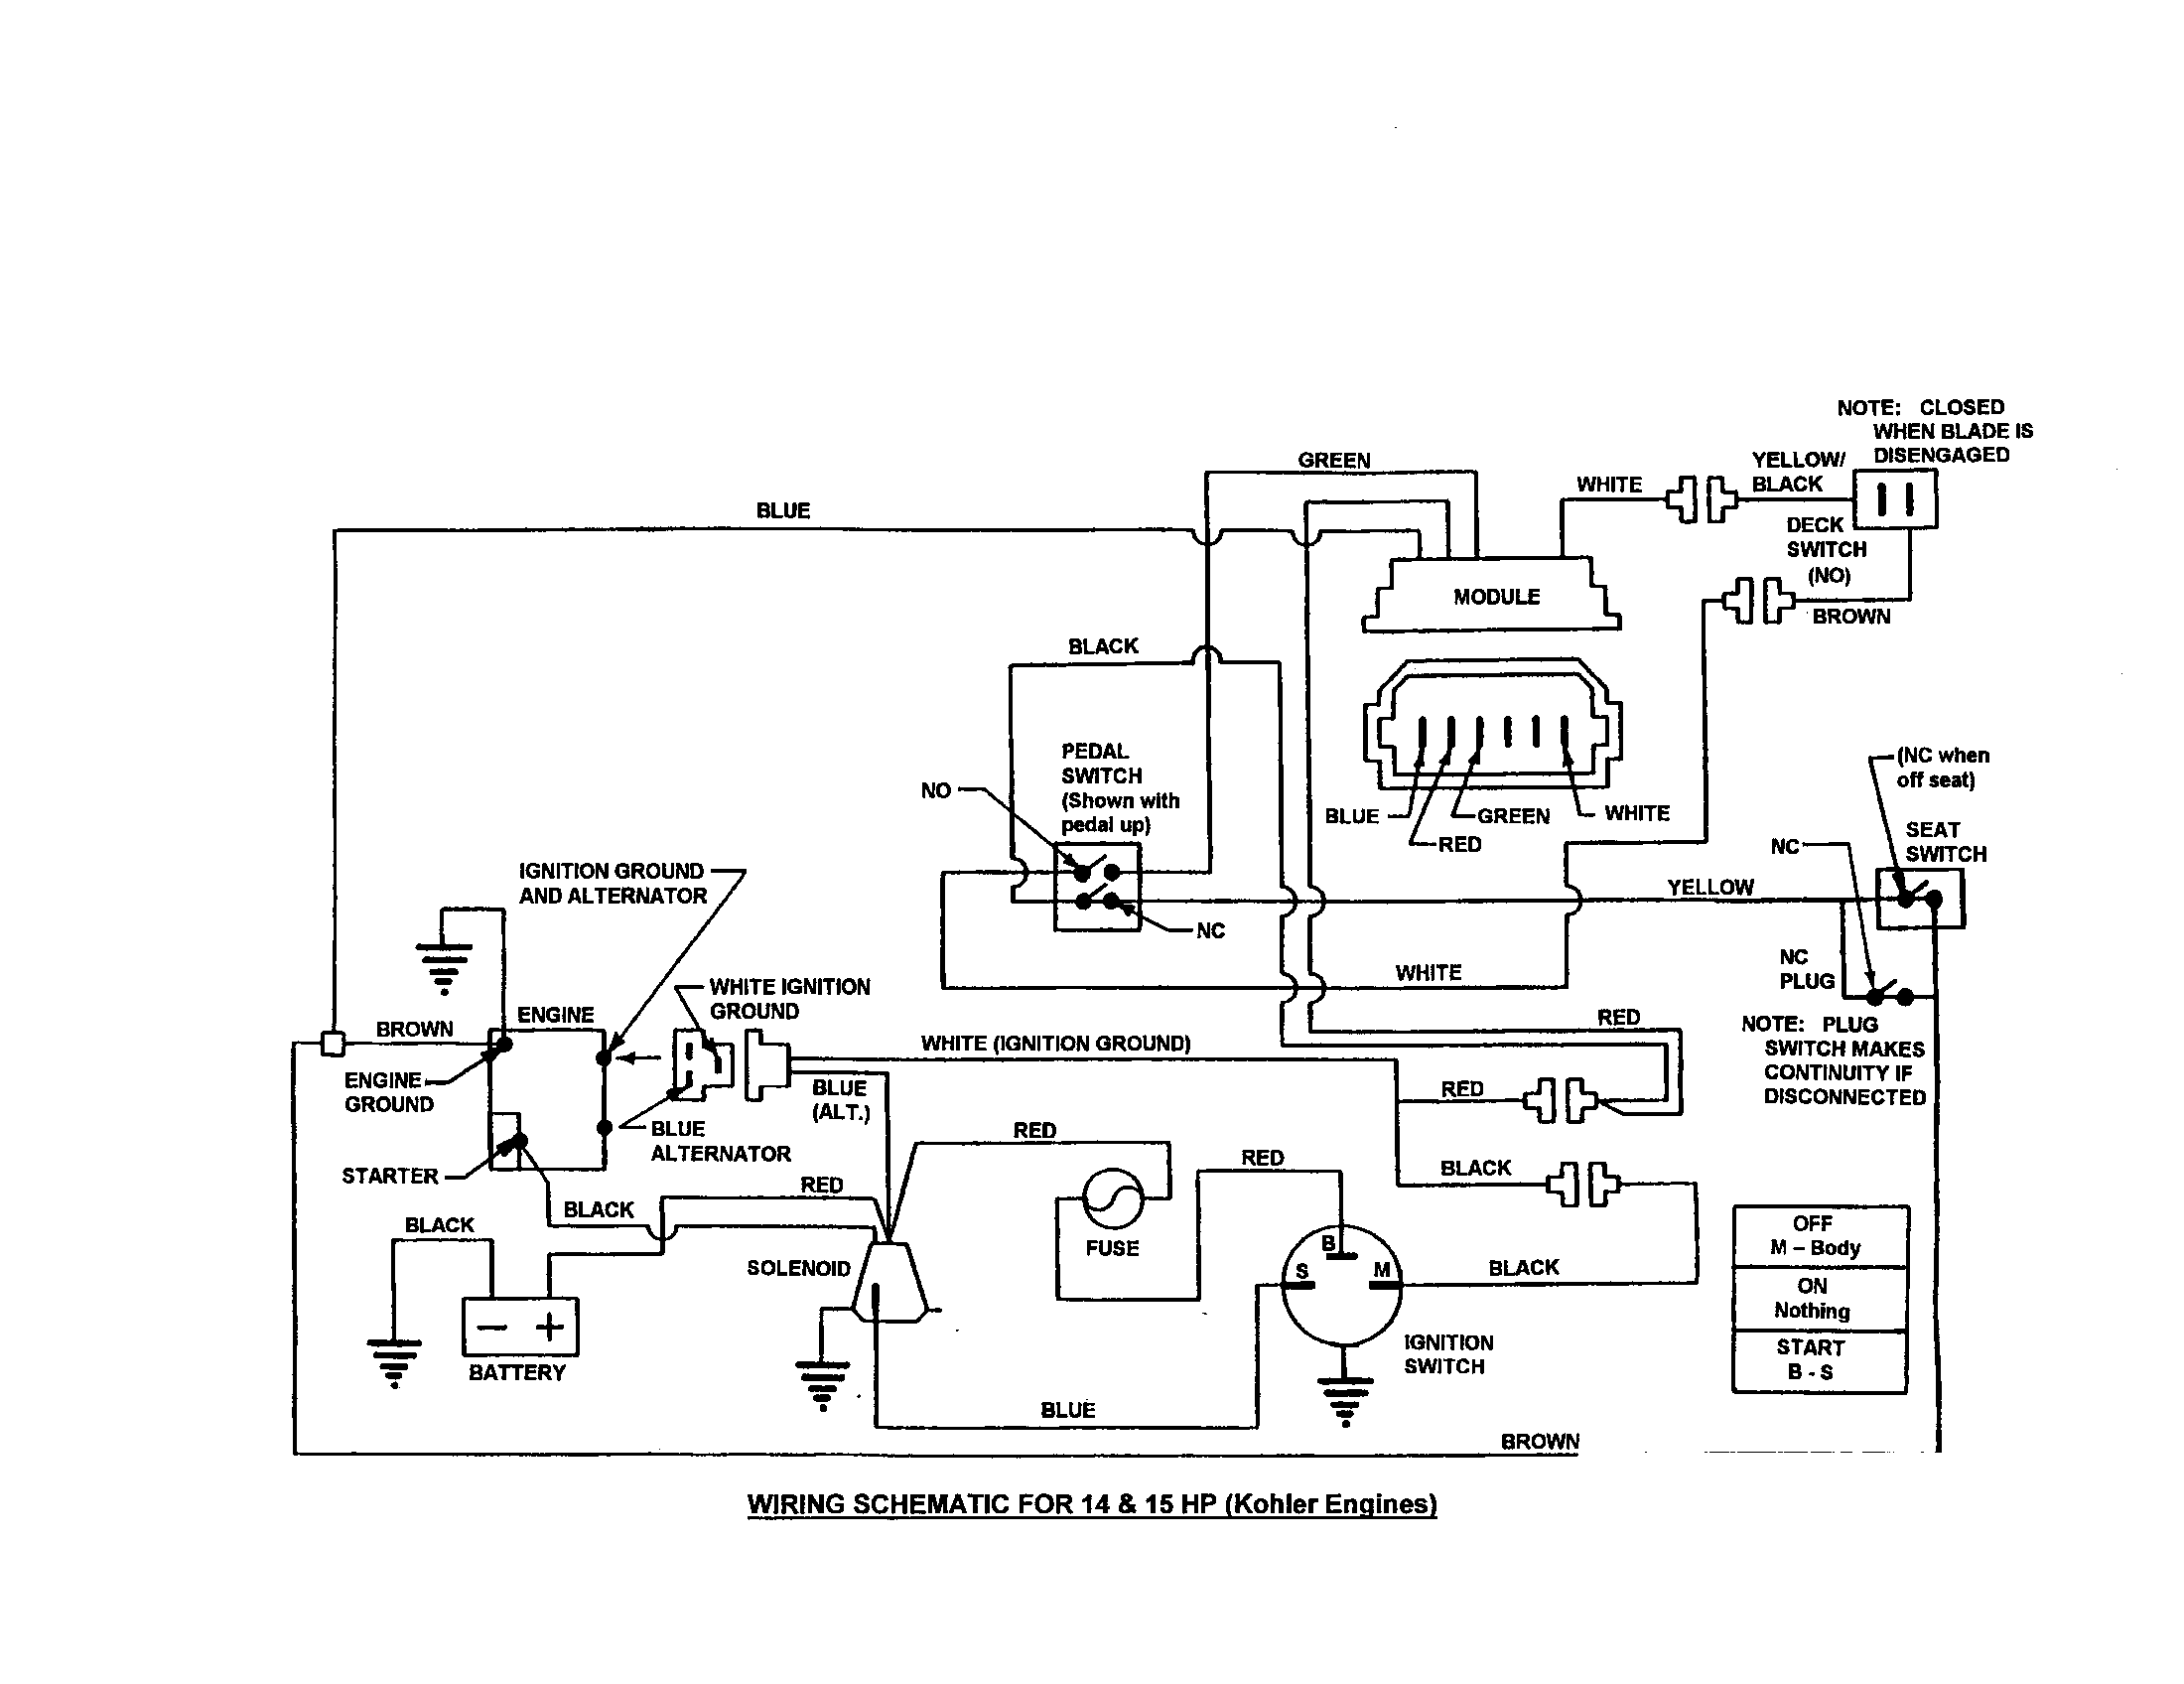 WIRING SCHEMATIC-14,15 HP (KOHLER) Diagram & Parts List